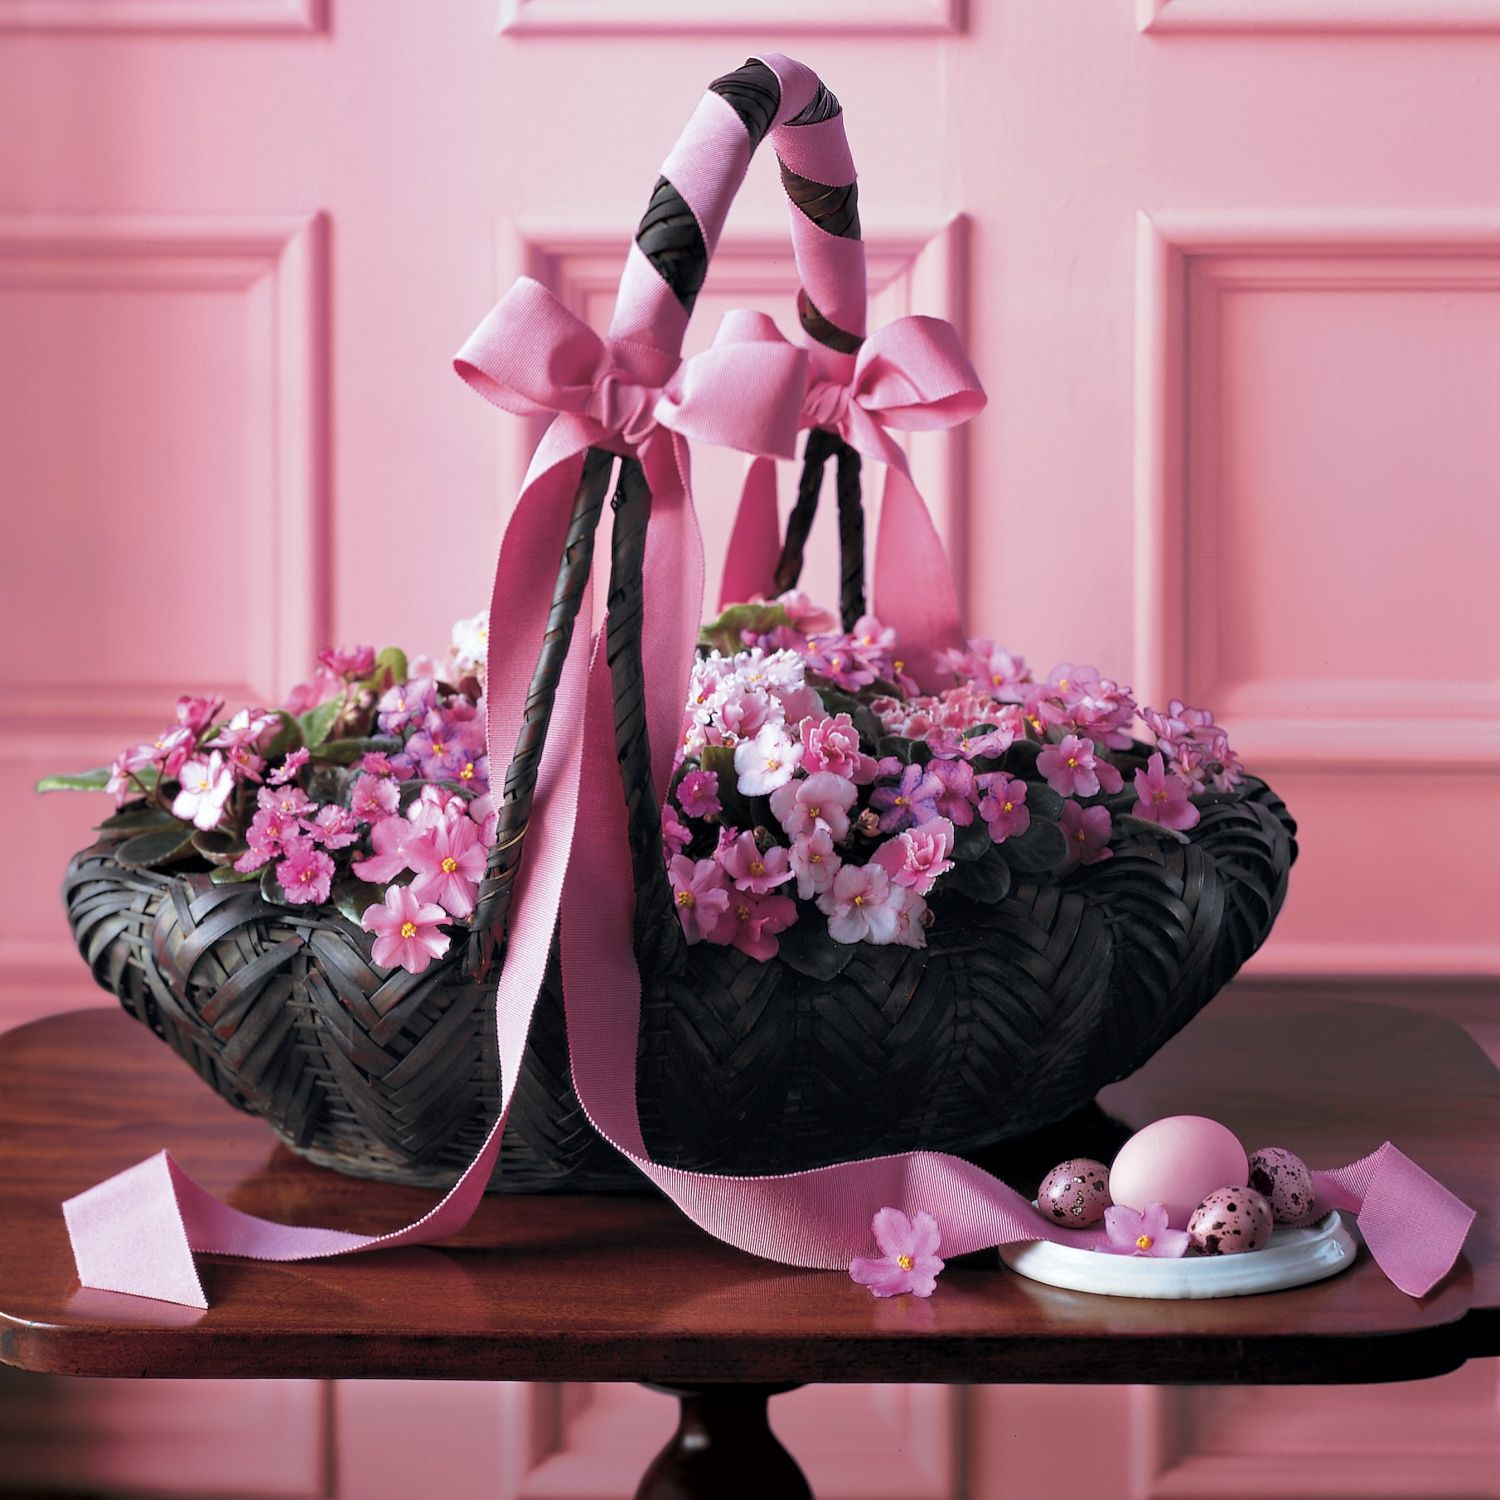 African violets shine amongst pink Easter eggs in this Japanese oval basket.